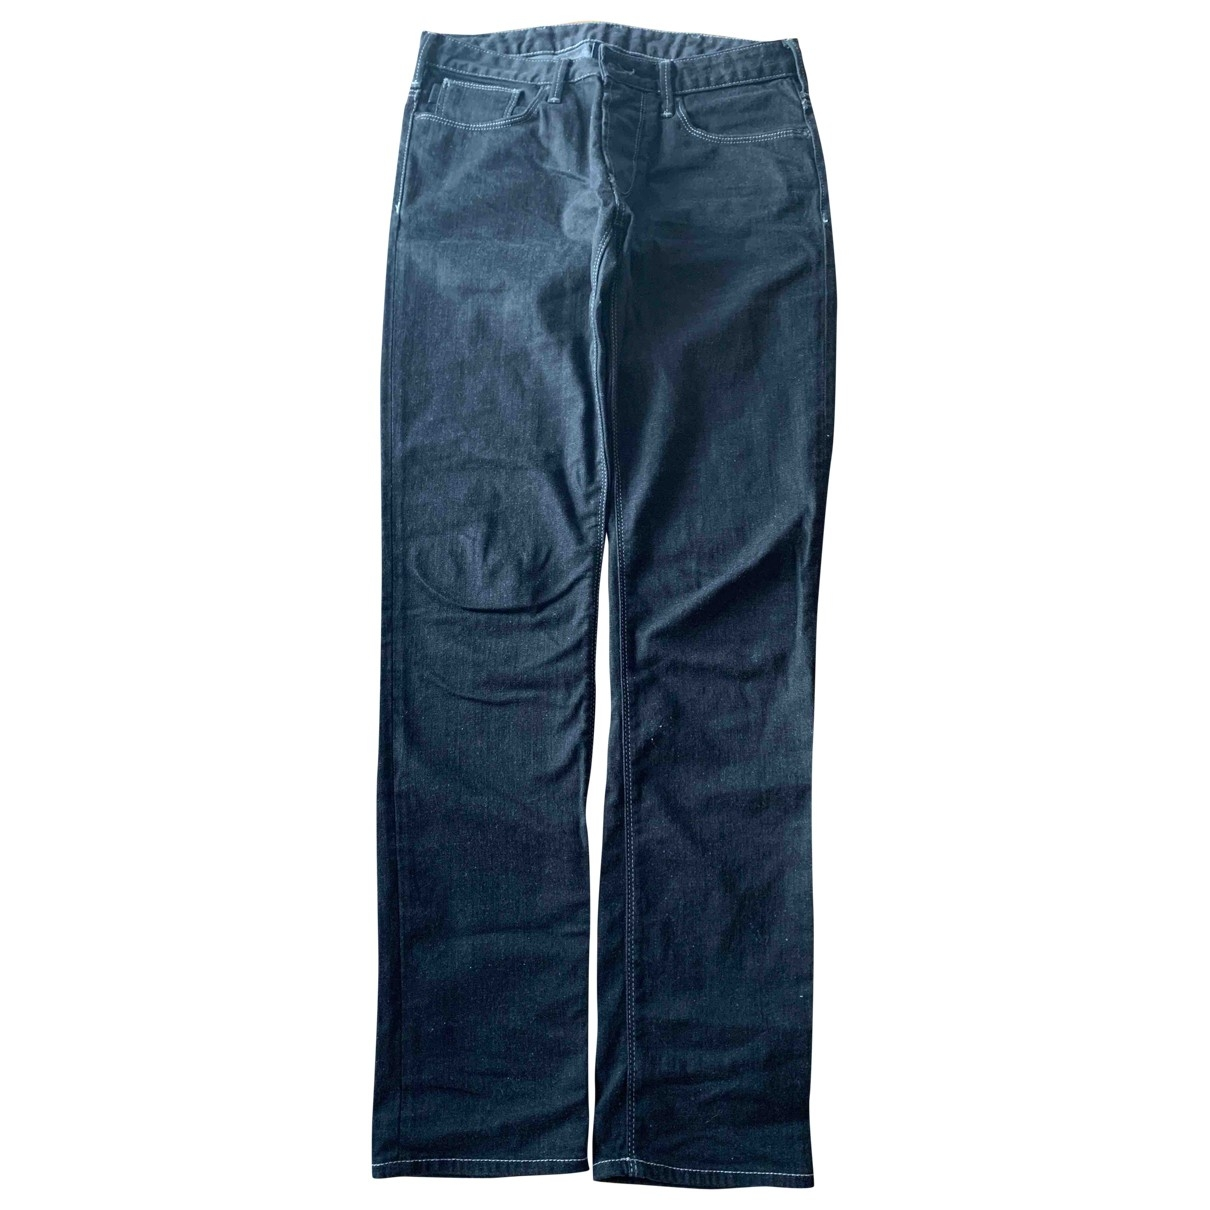 Armani Jeans \N Black Cotton - elasthane Jeans for Men 30 US